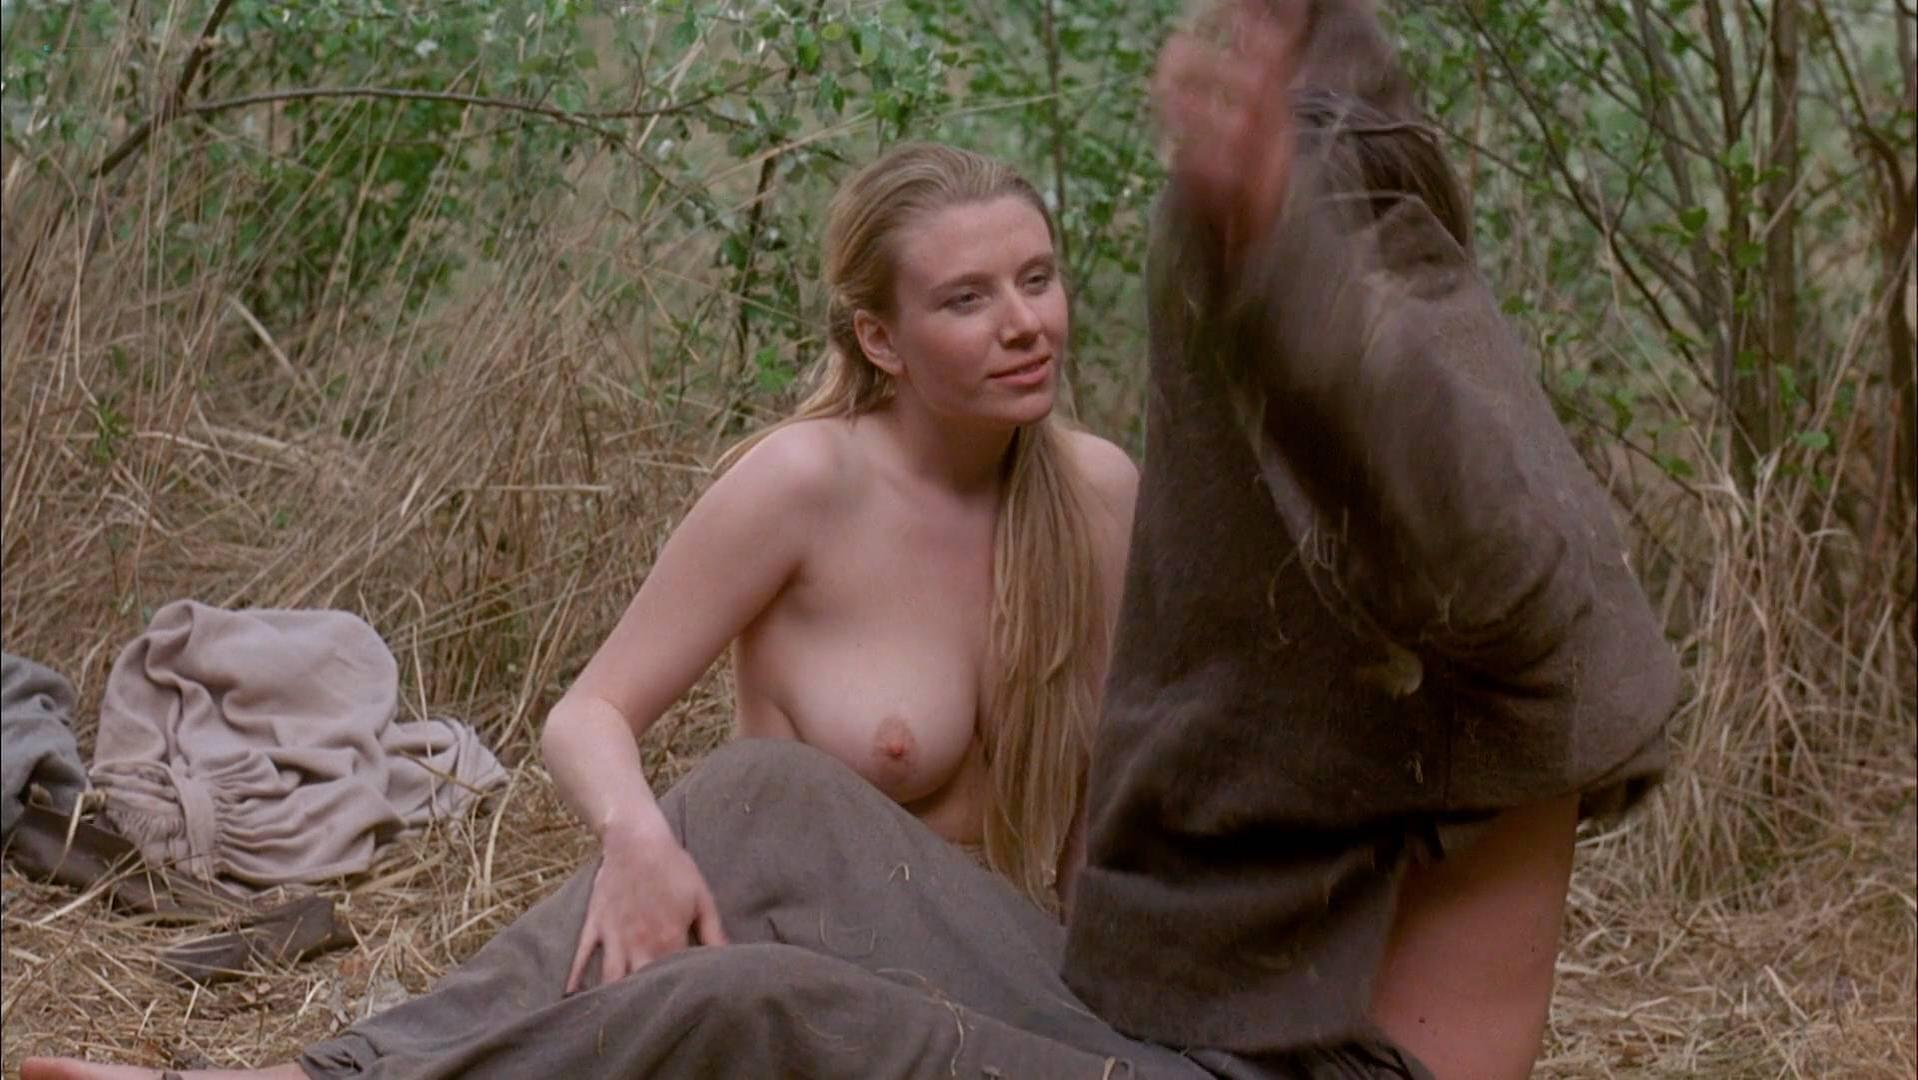 Melanie doutey nude boobs and bush in el lobo movie - 1 part 3